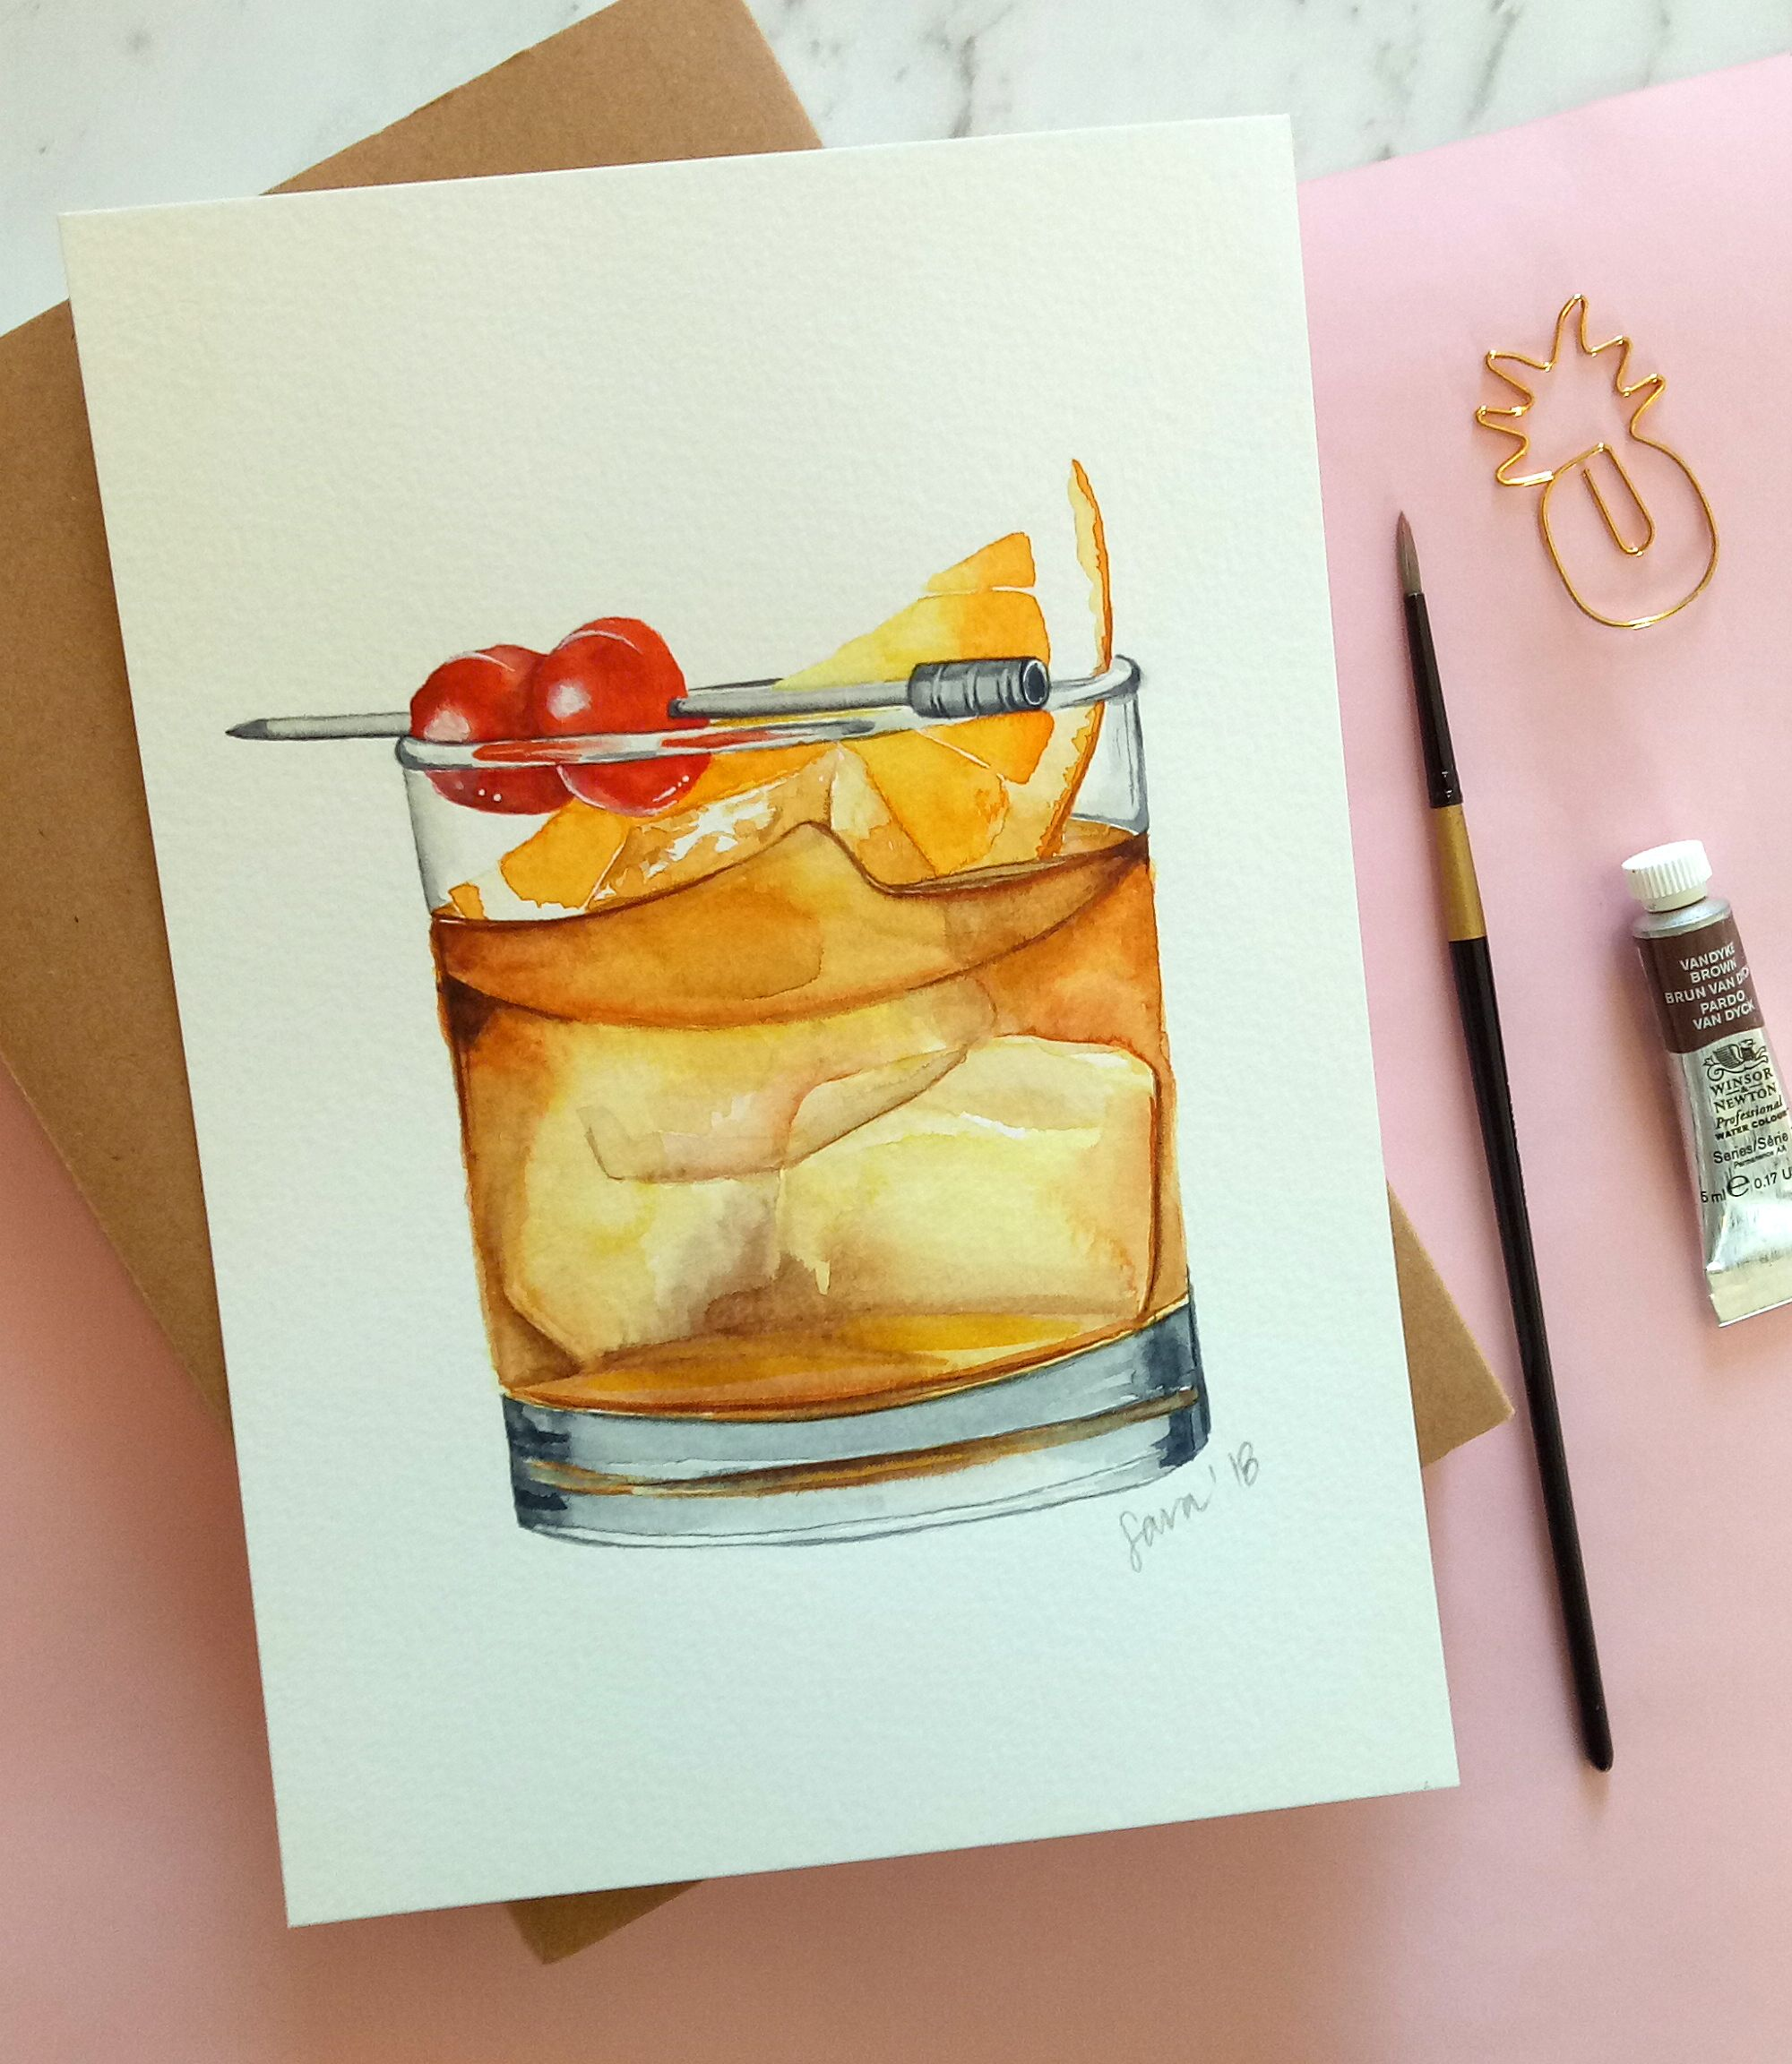 Old Fashioned Cocktail Watercolour Cocktail Illustration Old Fashioned Cocktail Watercolor Illustration